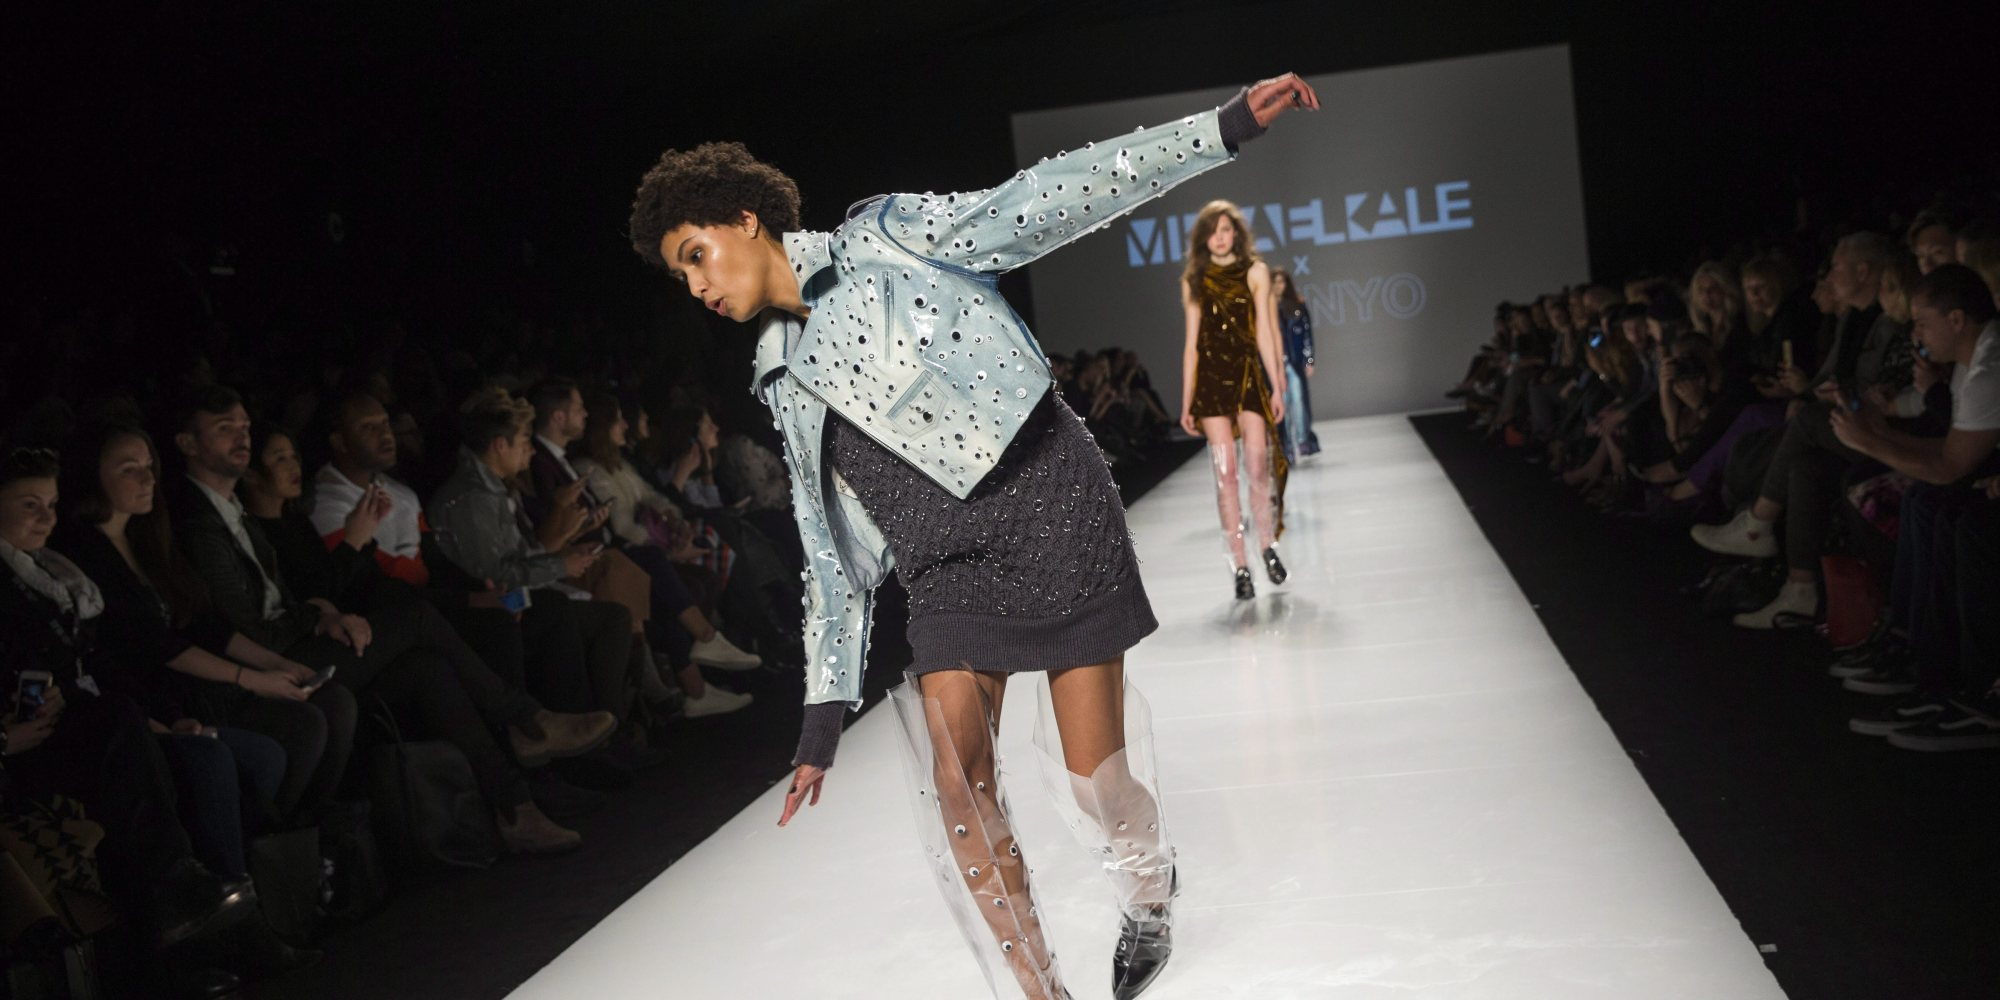 Toronto Fashion Week All The Highlights From Day 1 At The